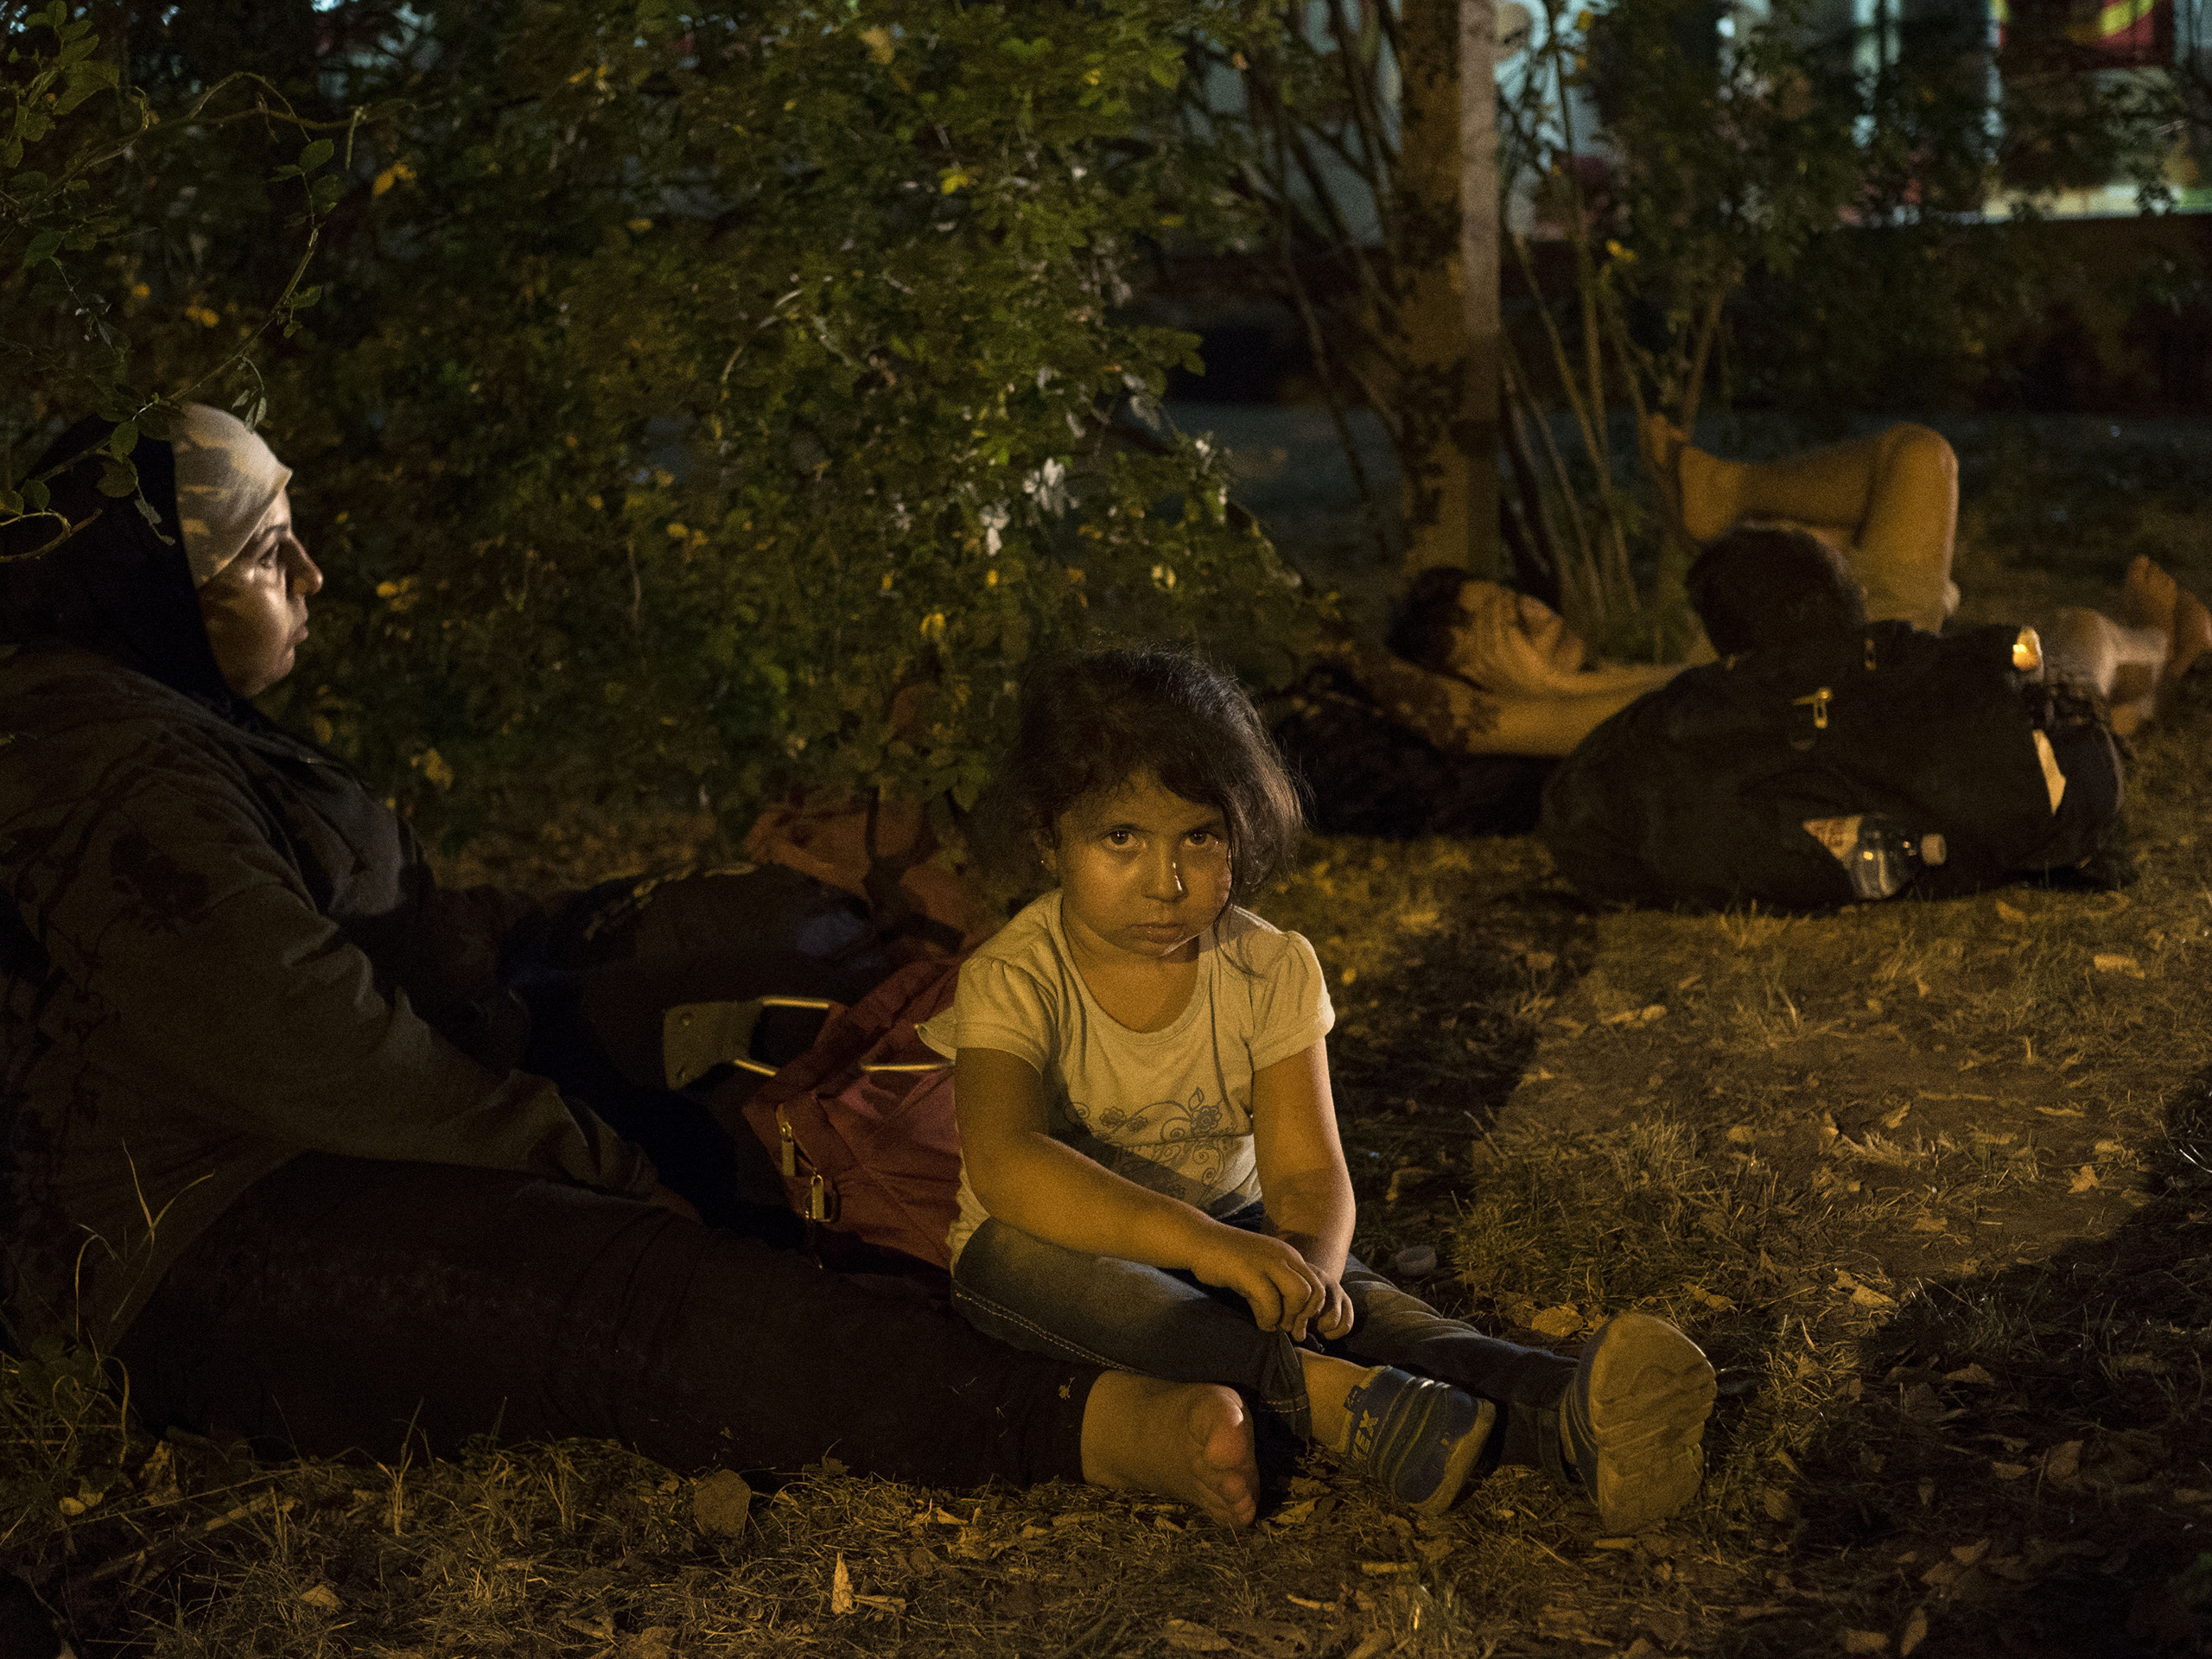 Horgos, Serbia. August 12, 2015. Syrian families wait for nightfall to walk toward the border to attempt to cross it.